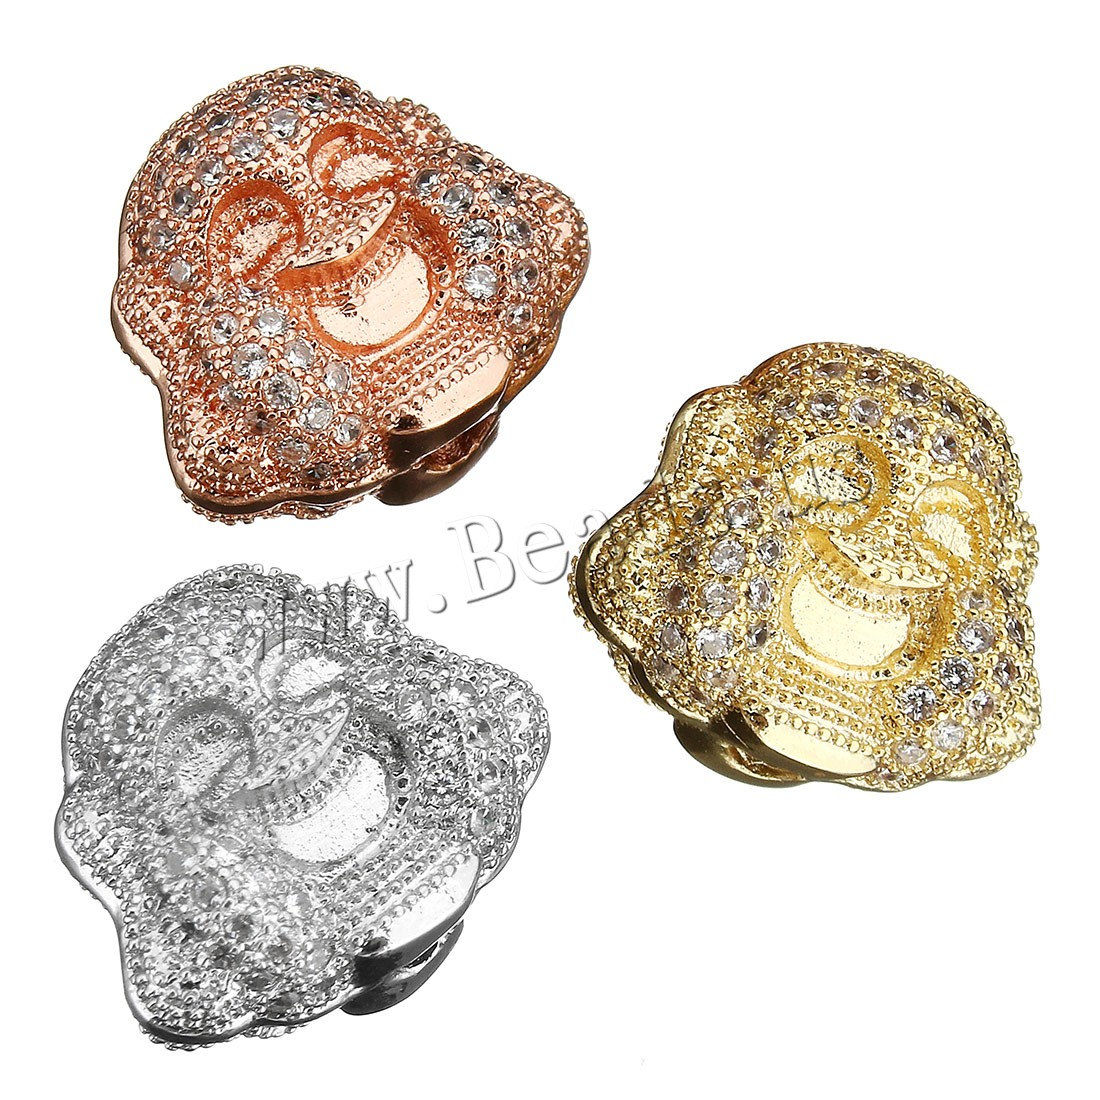 Buy Buddhist Beads Brass Buddha plated micro pave cubic zirconia colors choice 15x13x9mm Hole:Approx 2mm 1 Sold Lot